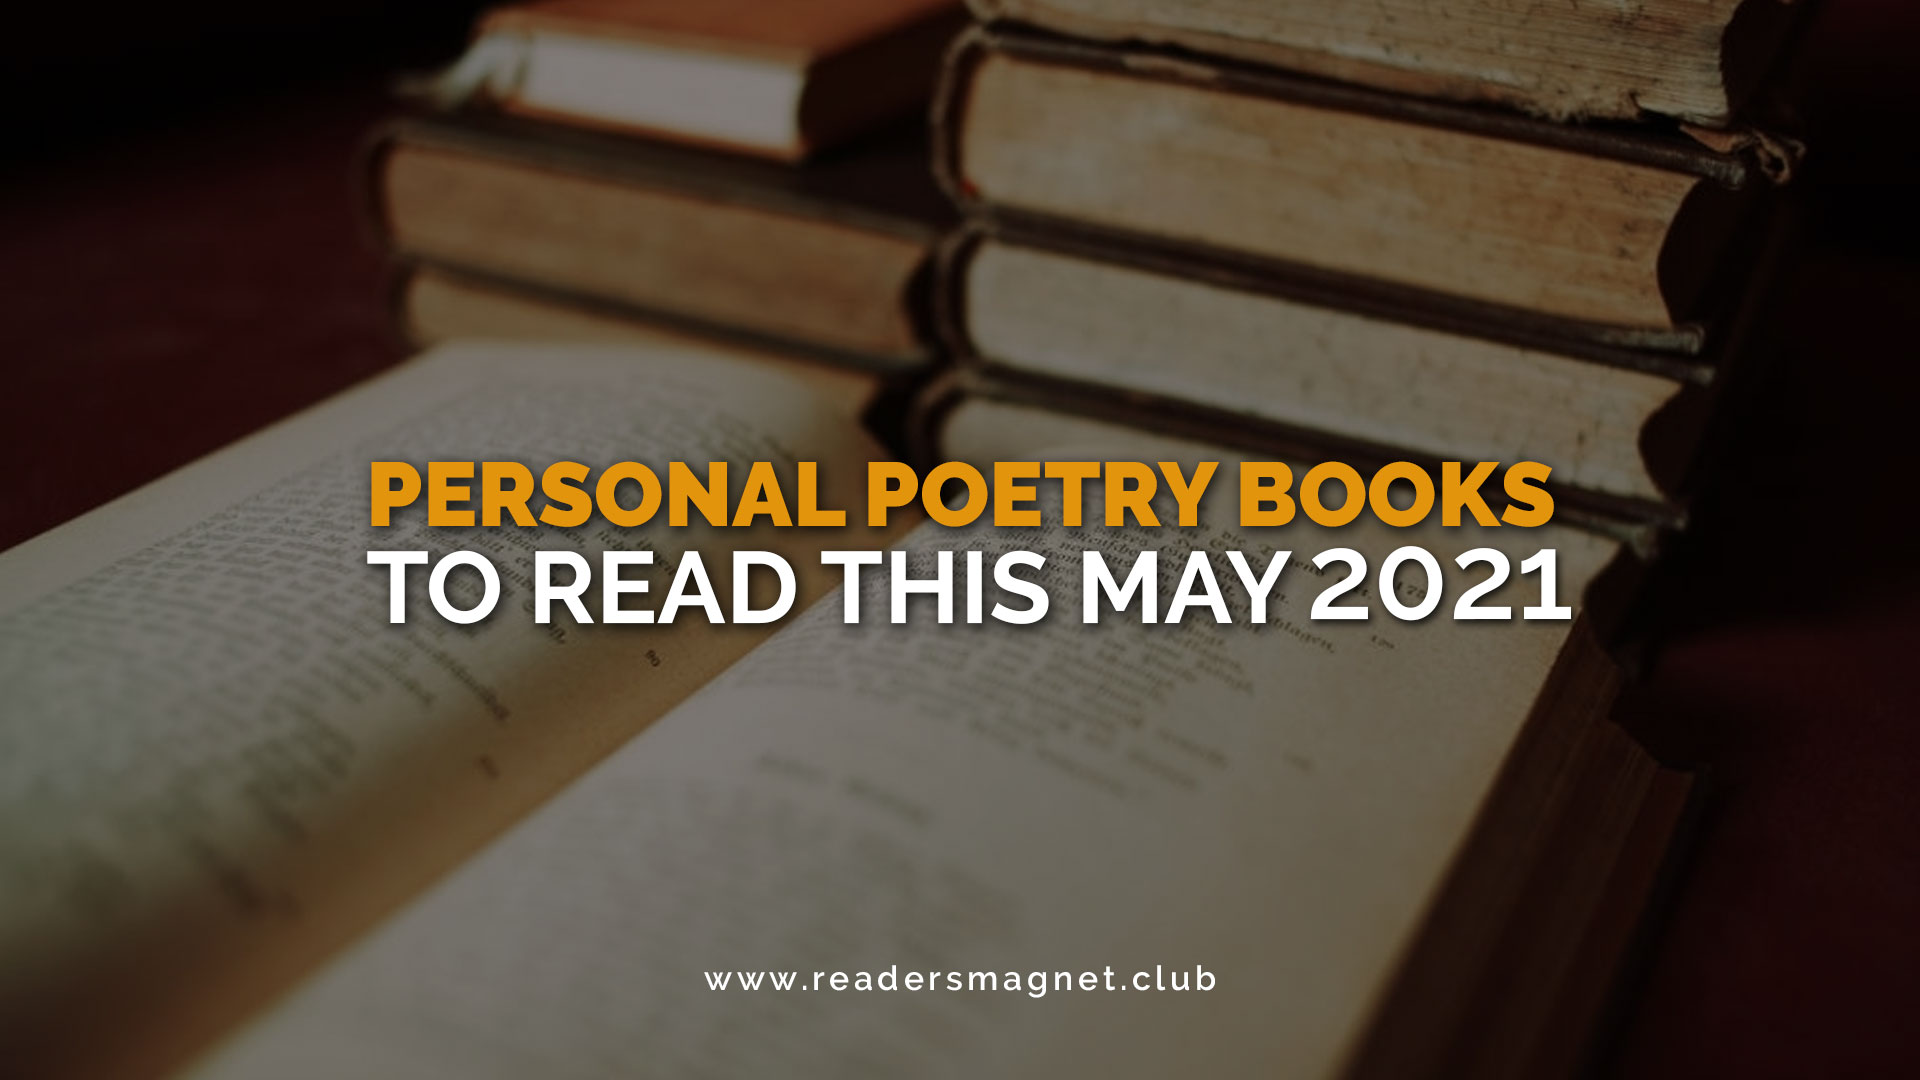 Personal-Poetry-Books-to-Read-this-May-2021 banner